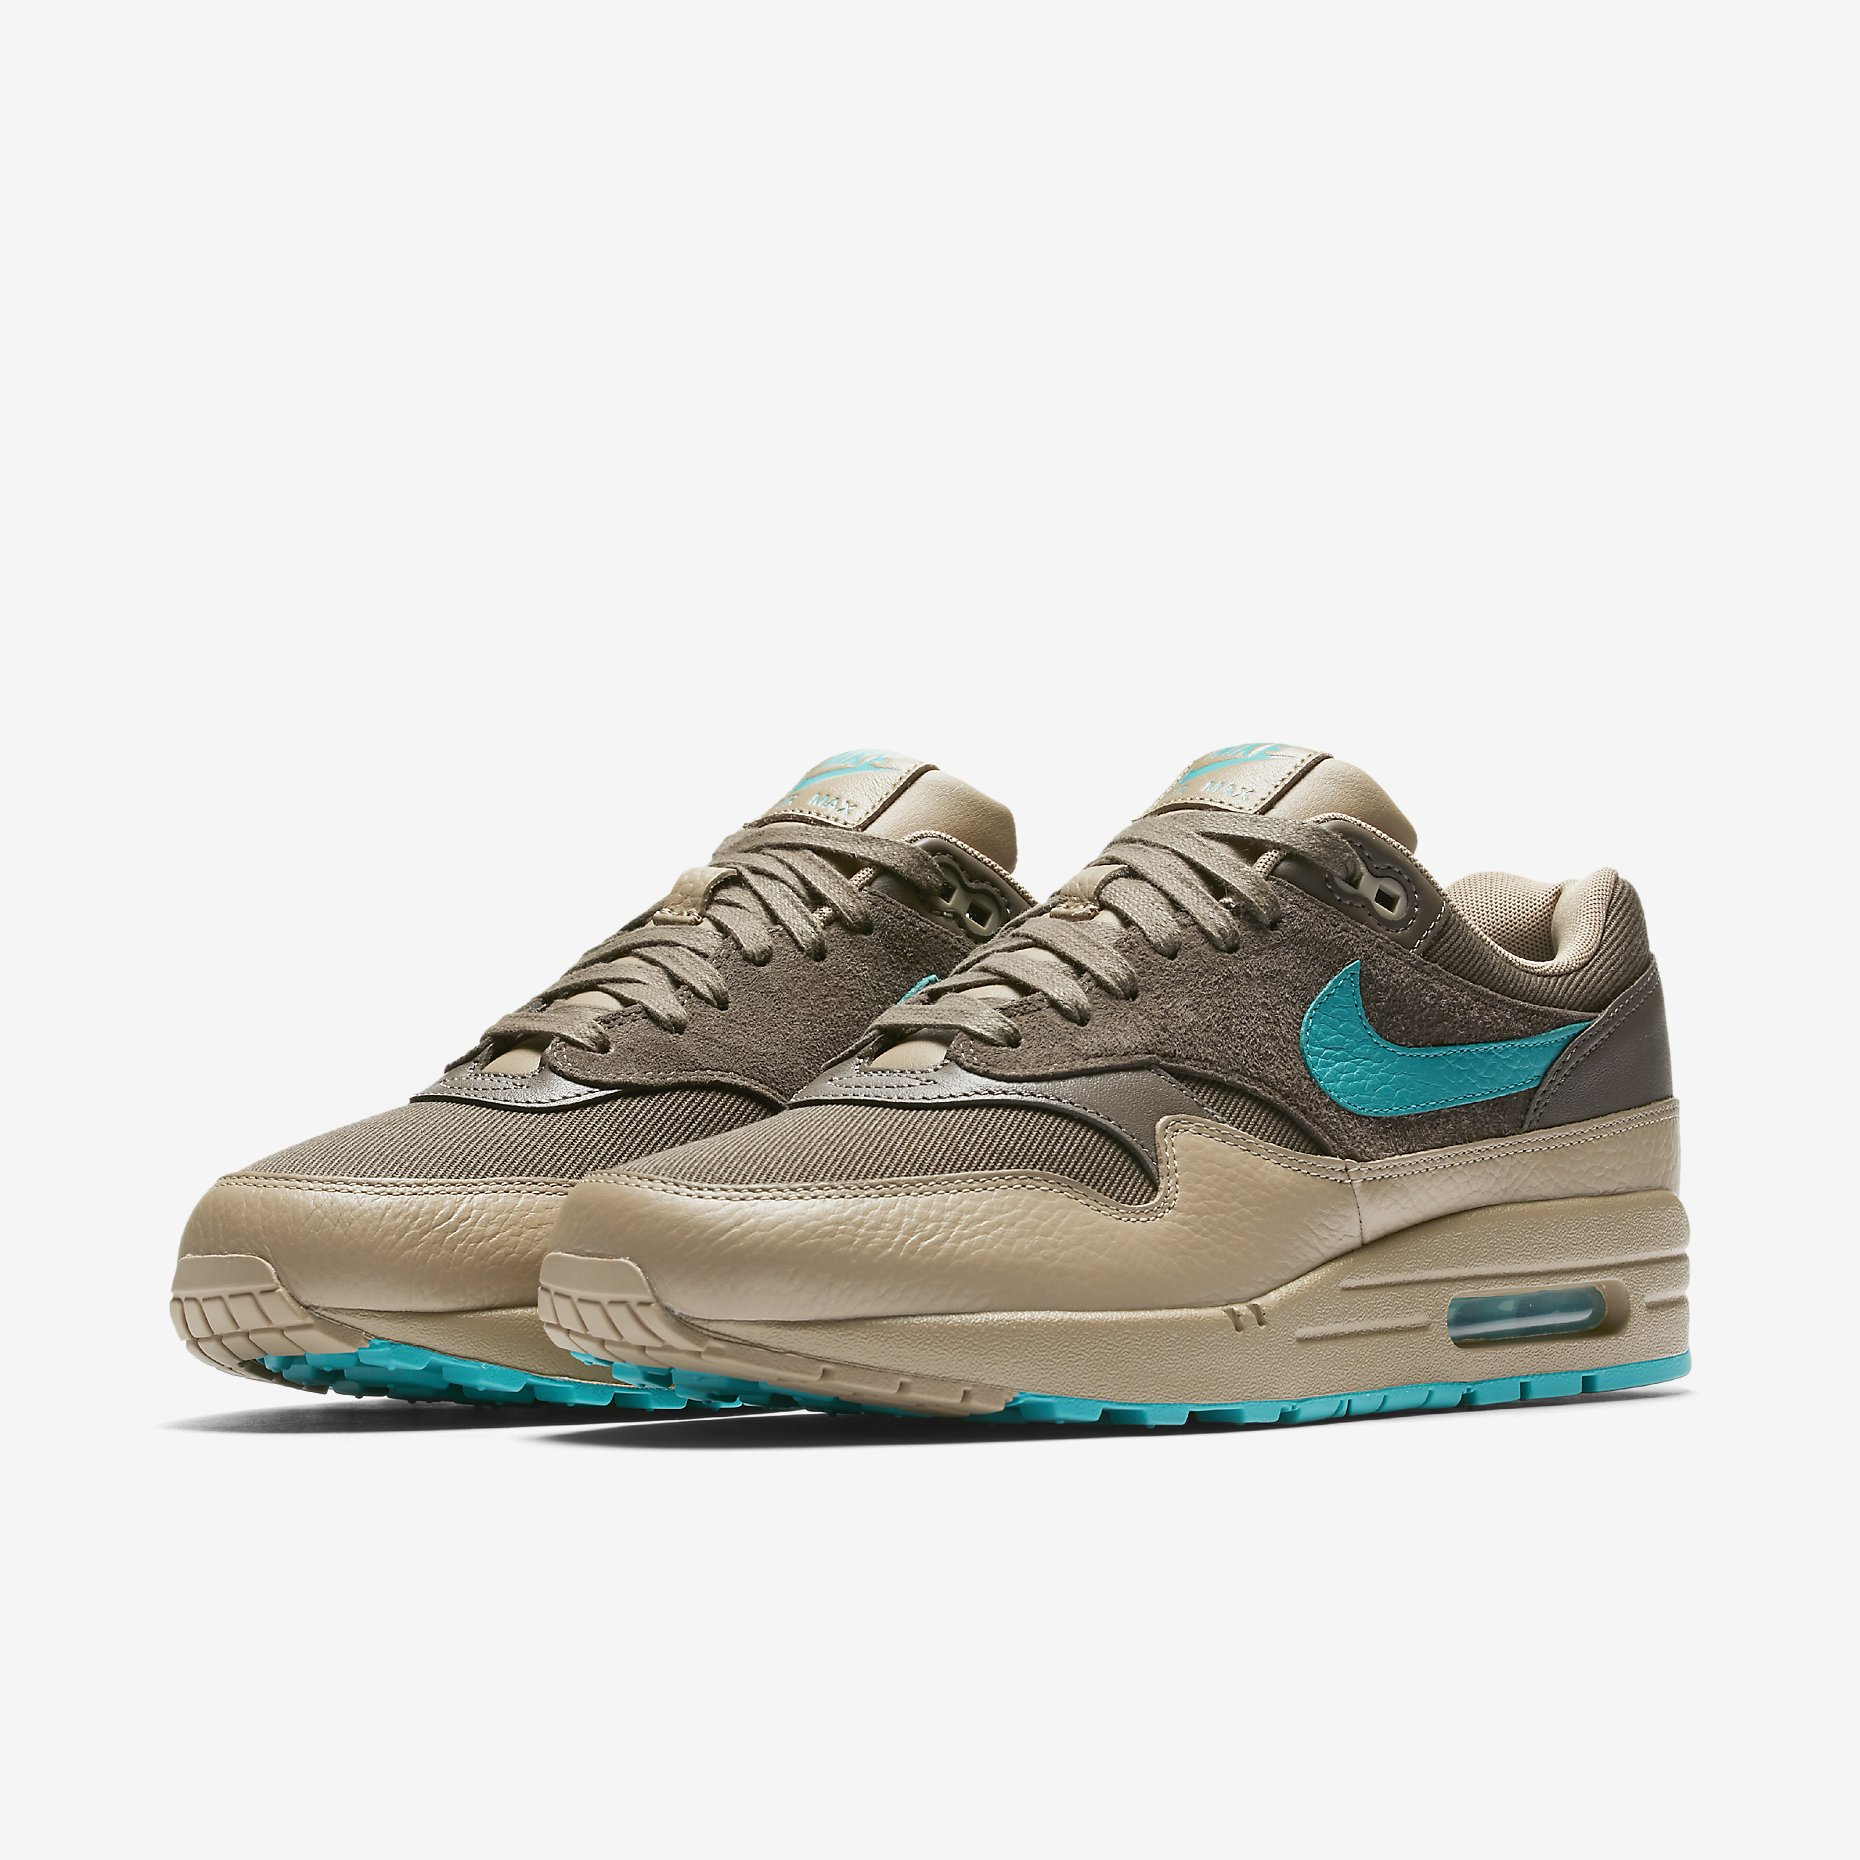 Nike Air Max 1 Premium Ridgerock 875844 200 3